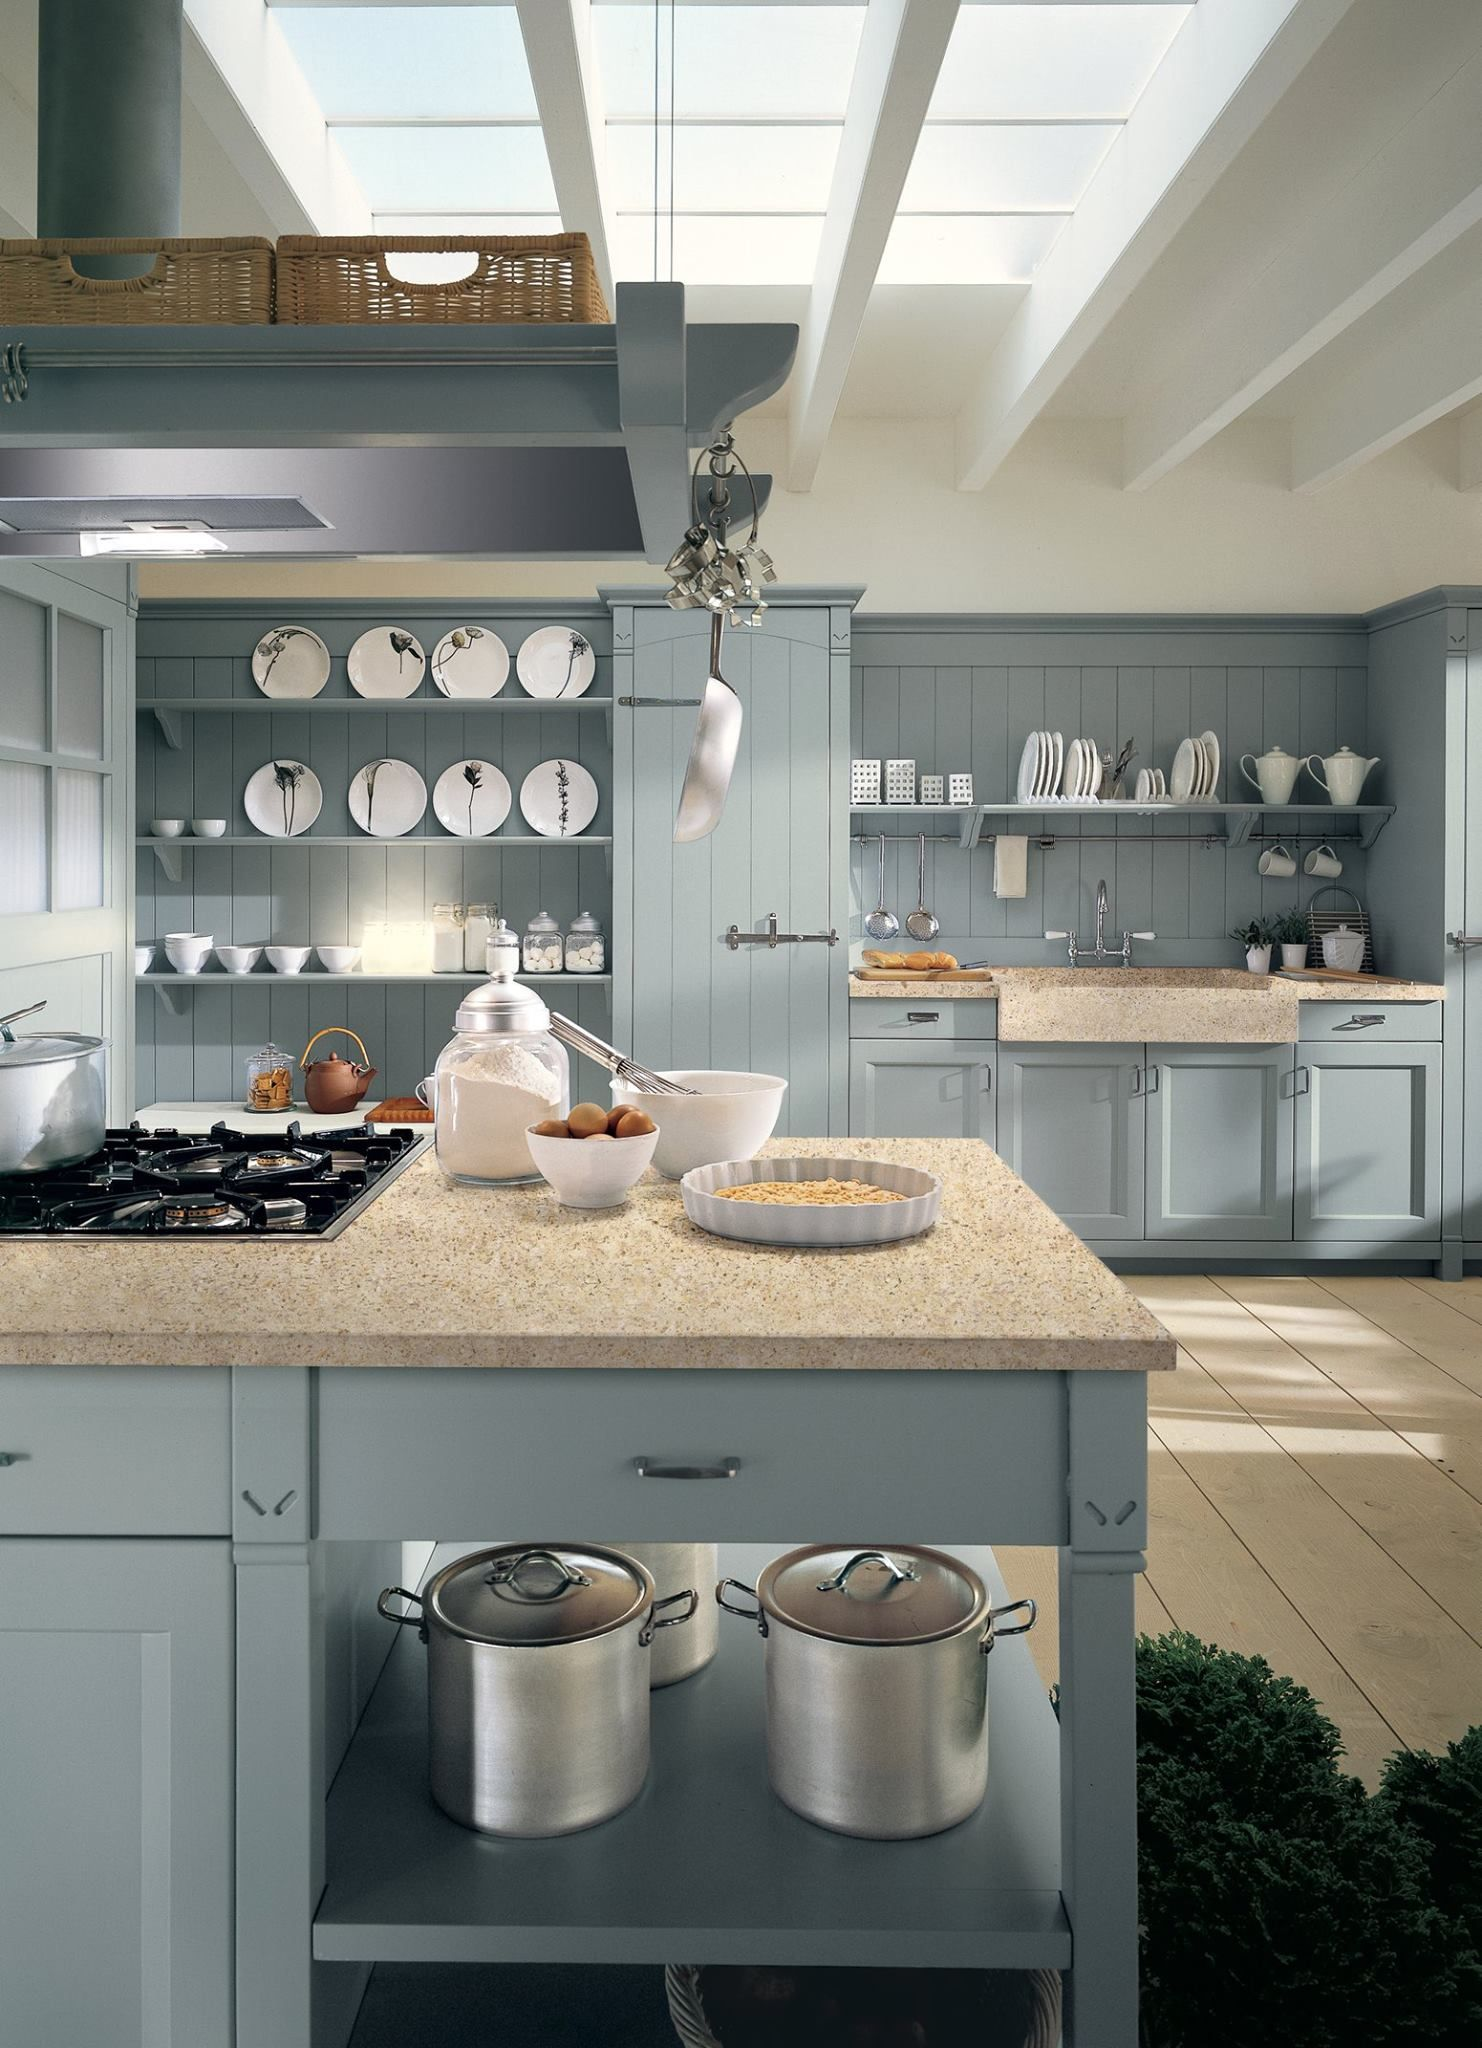 Cucina Gas Inglese Minacciolo English Mood Kitchen Cucina Nel 2019 Kitchen Home